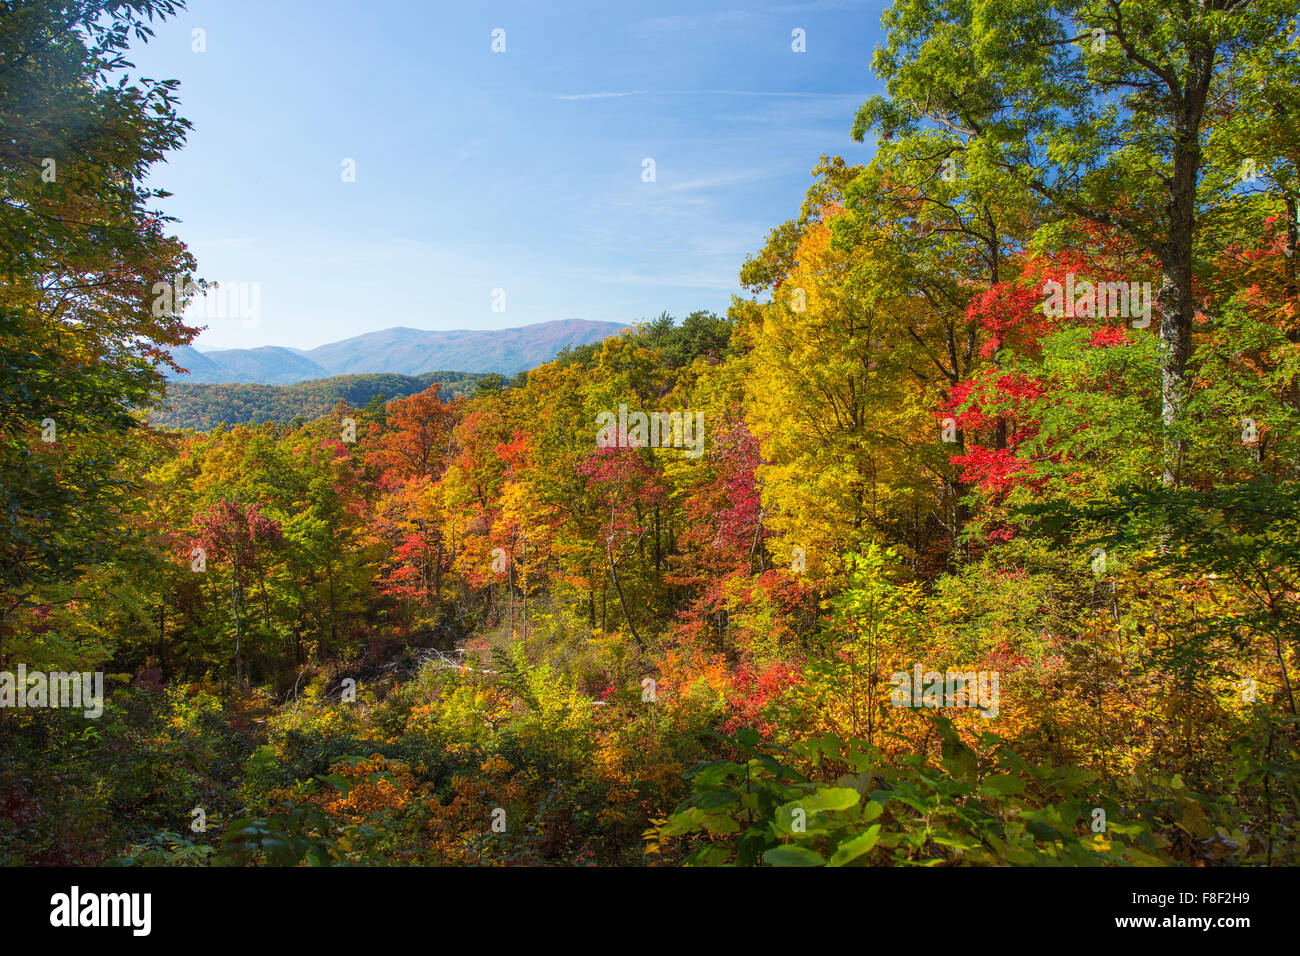 Fall color on the Roaring Fork Motor Nature Trail in Great Smoky Mountains National Park in Tennessee - Stock Image